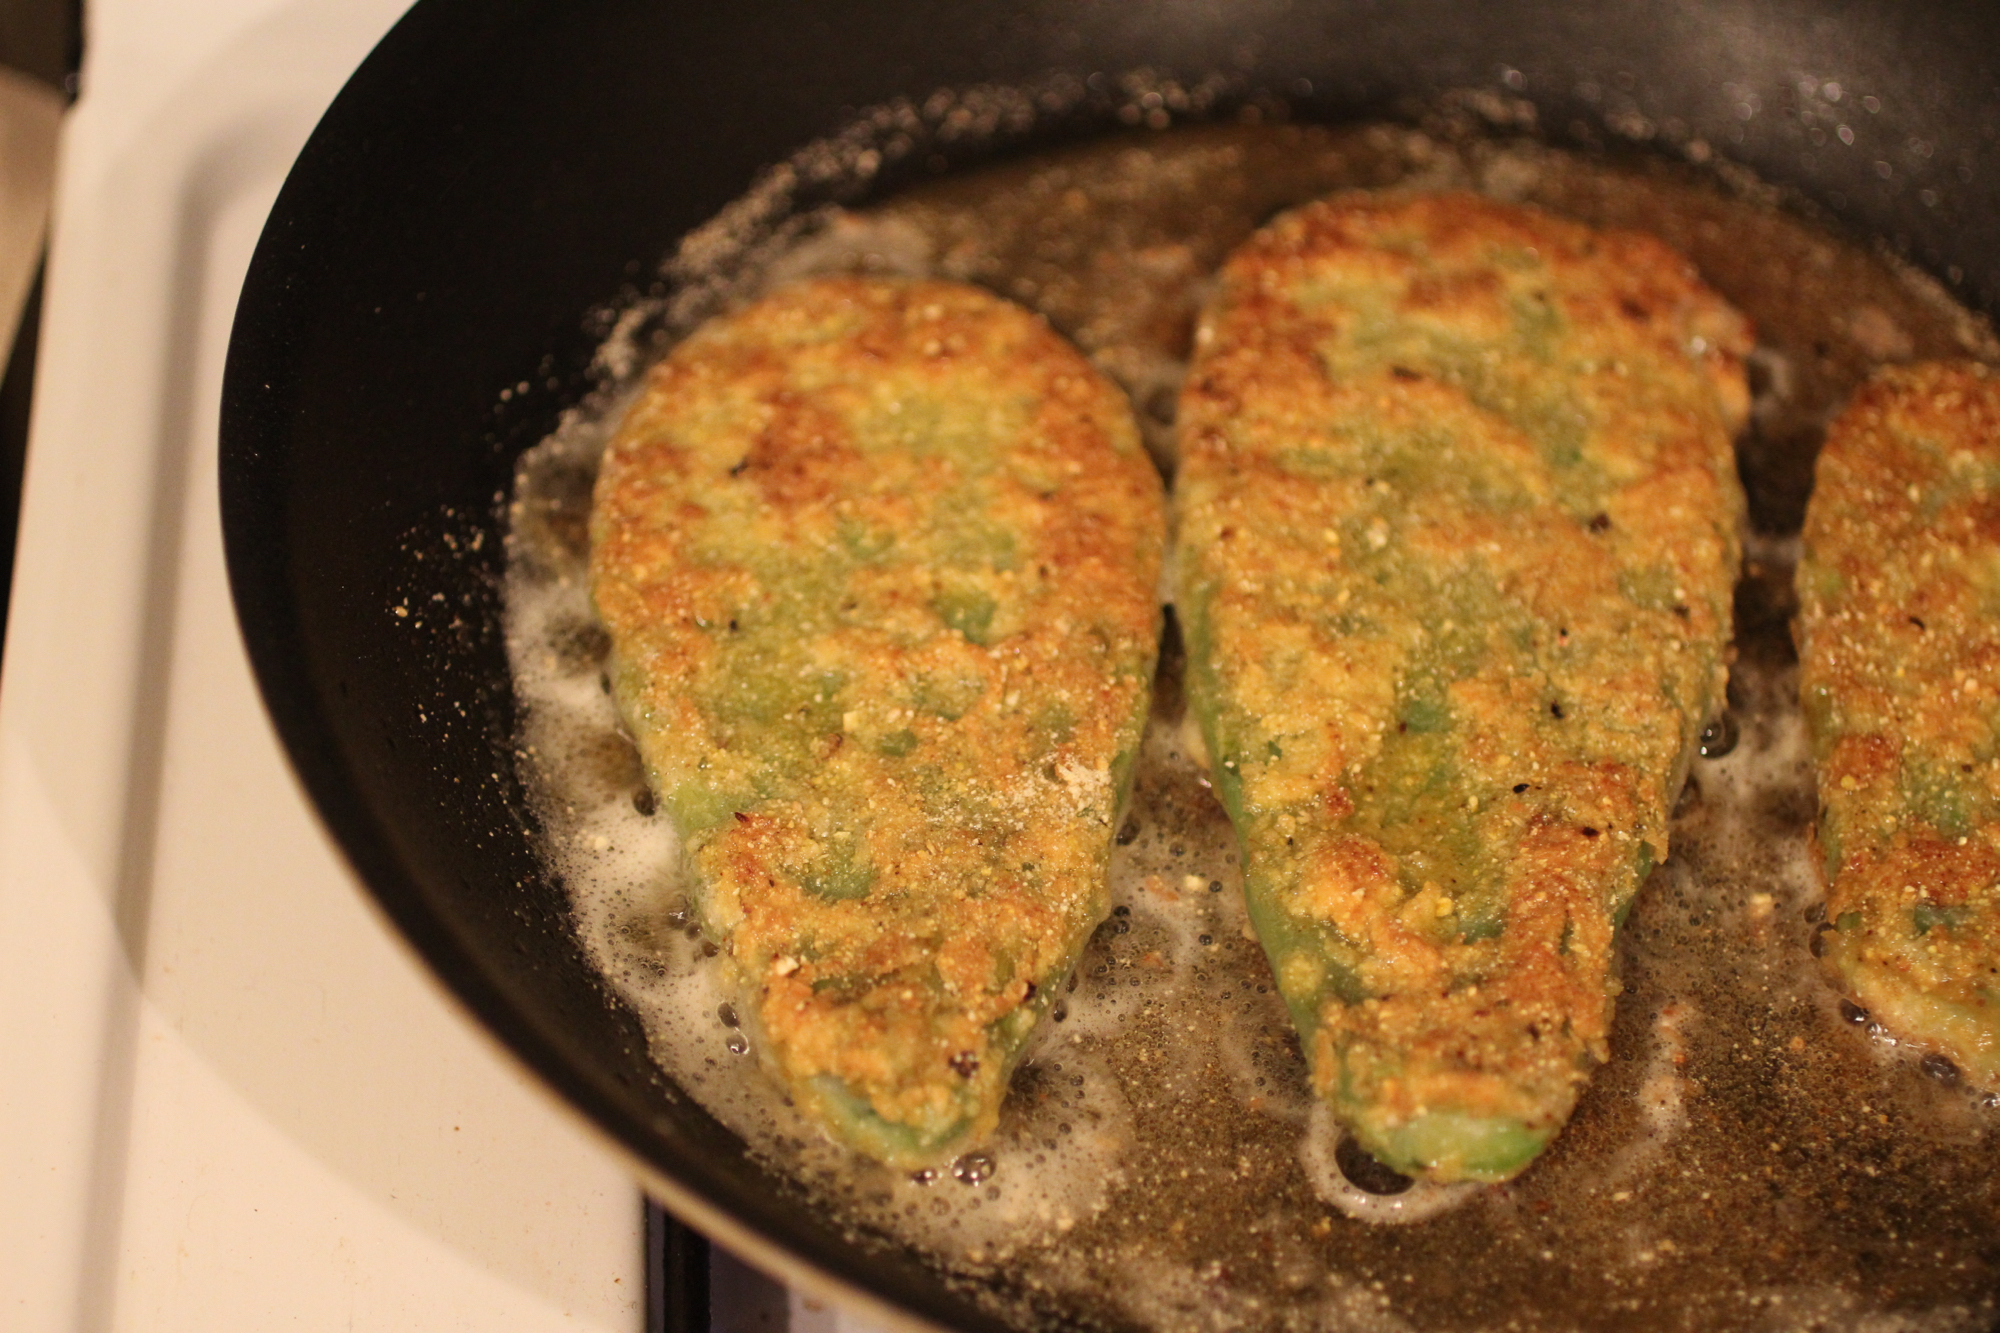 Frying to a golden-brown.